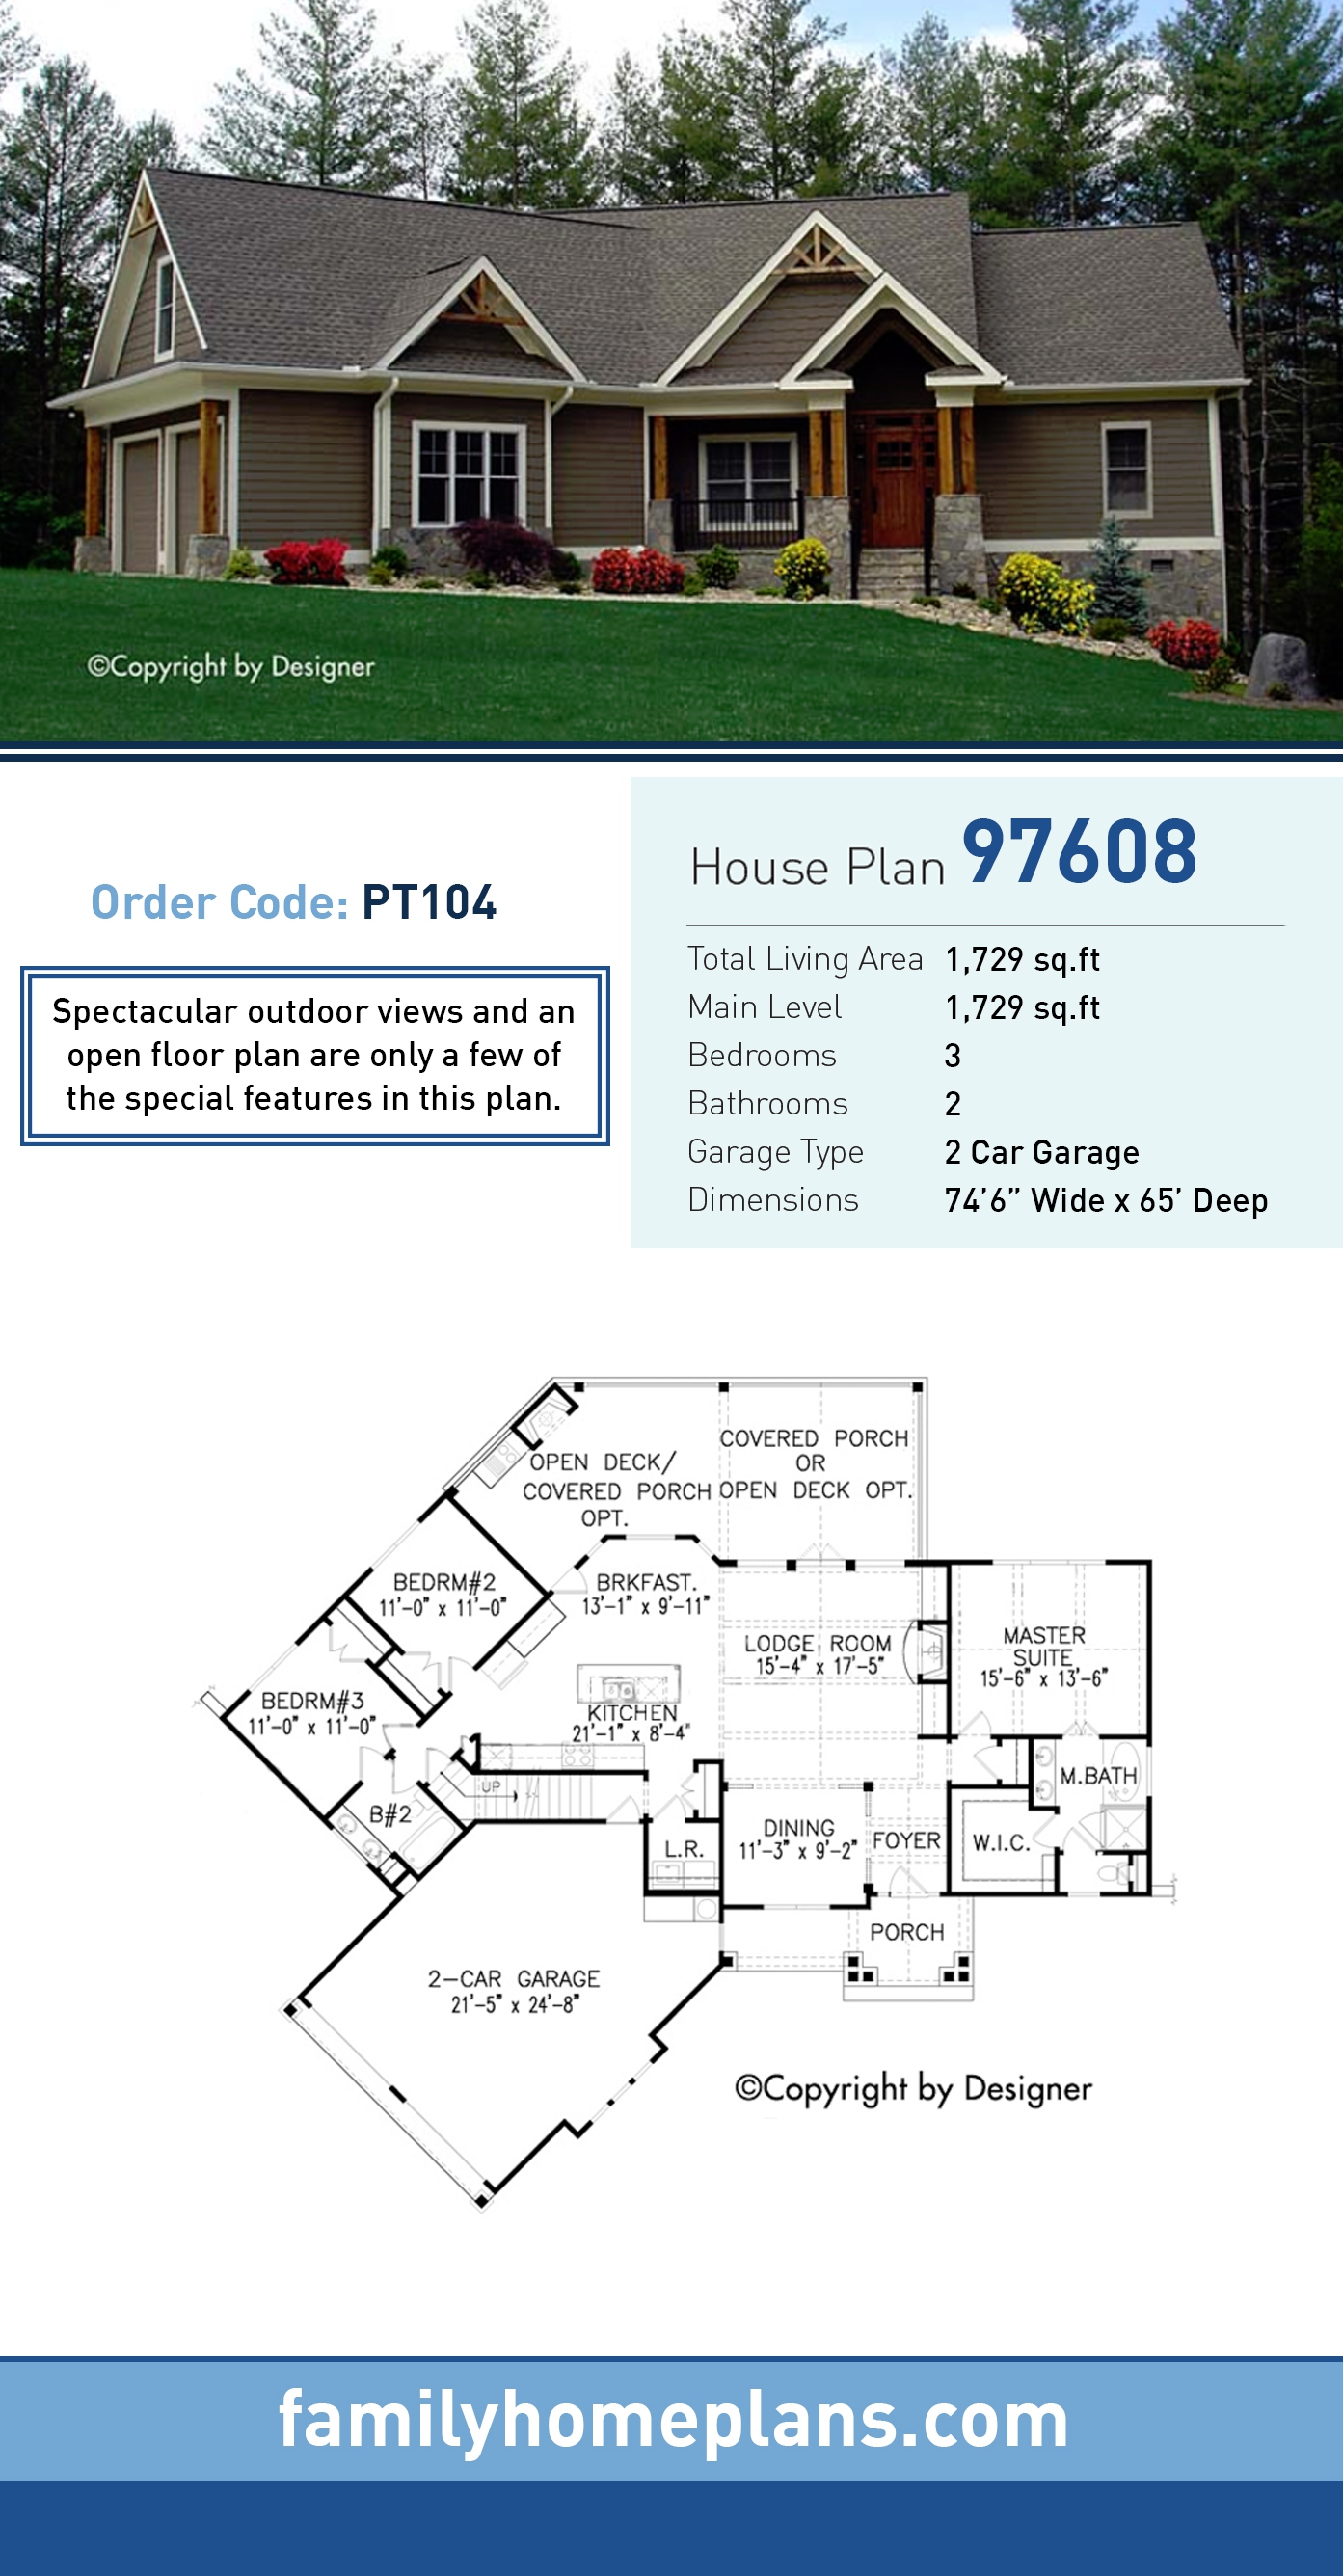 Craftsman , Ranch , Traditional House Plan 97608 with 3 Beds, 2 Baths, 2 Car Garage